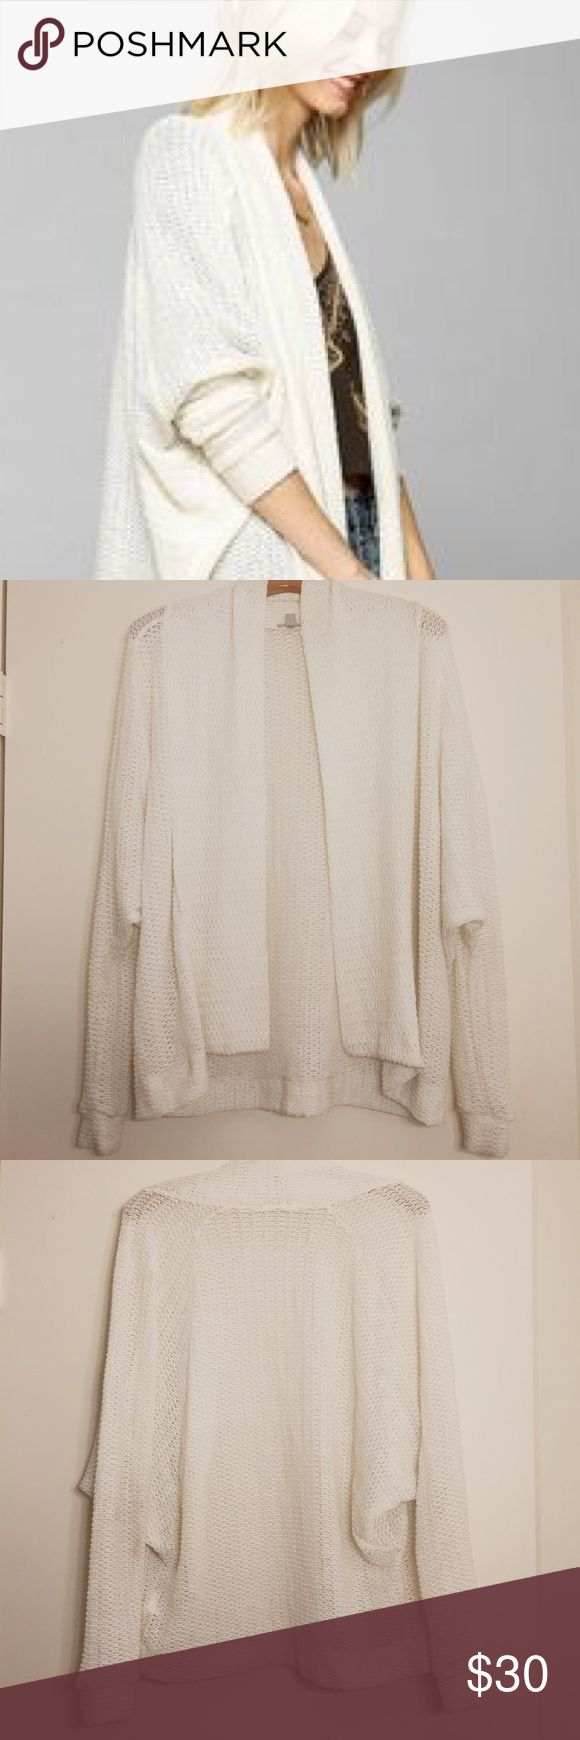 """Urban Outfitters Ecote """"batwing"""" sweater size xs Urban Outfitters Ecote """"bat wing"""" sweater size xs light sweater great to layer over a plaid shirt in the winter and to wear with a tank or tee in the fall or spring! Barely warn, in great condition Urban Outfitters Sweaters Cardigans"""